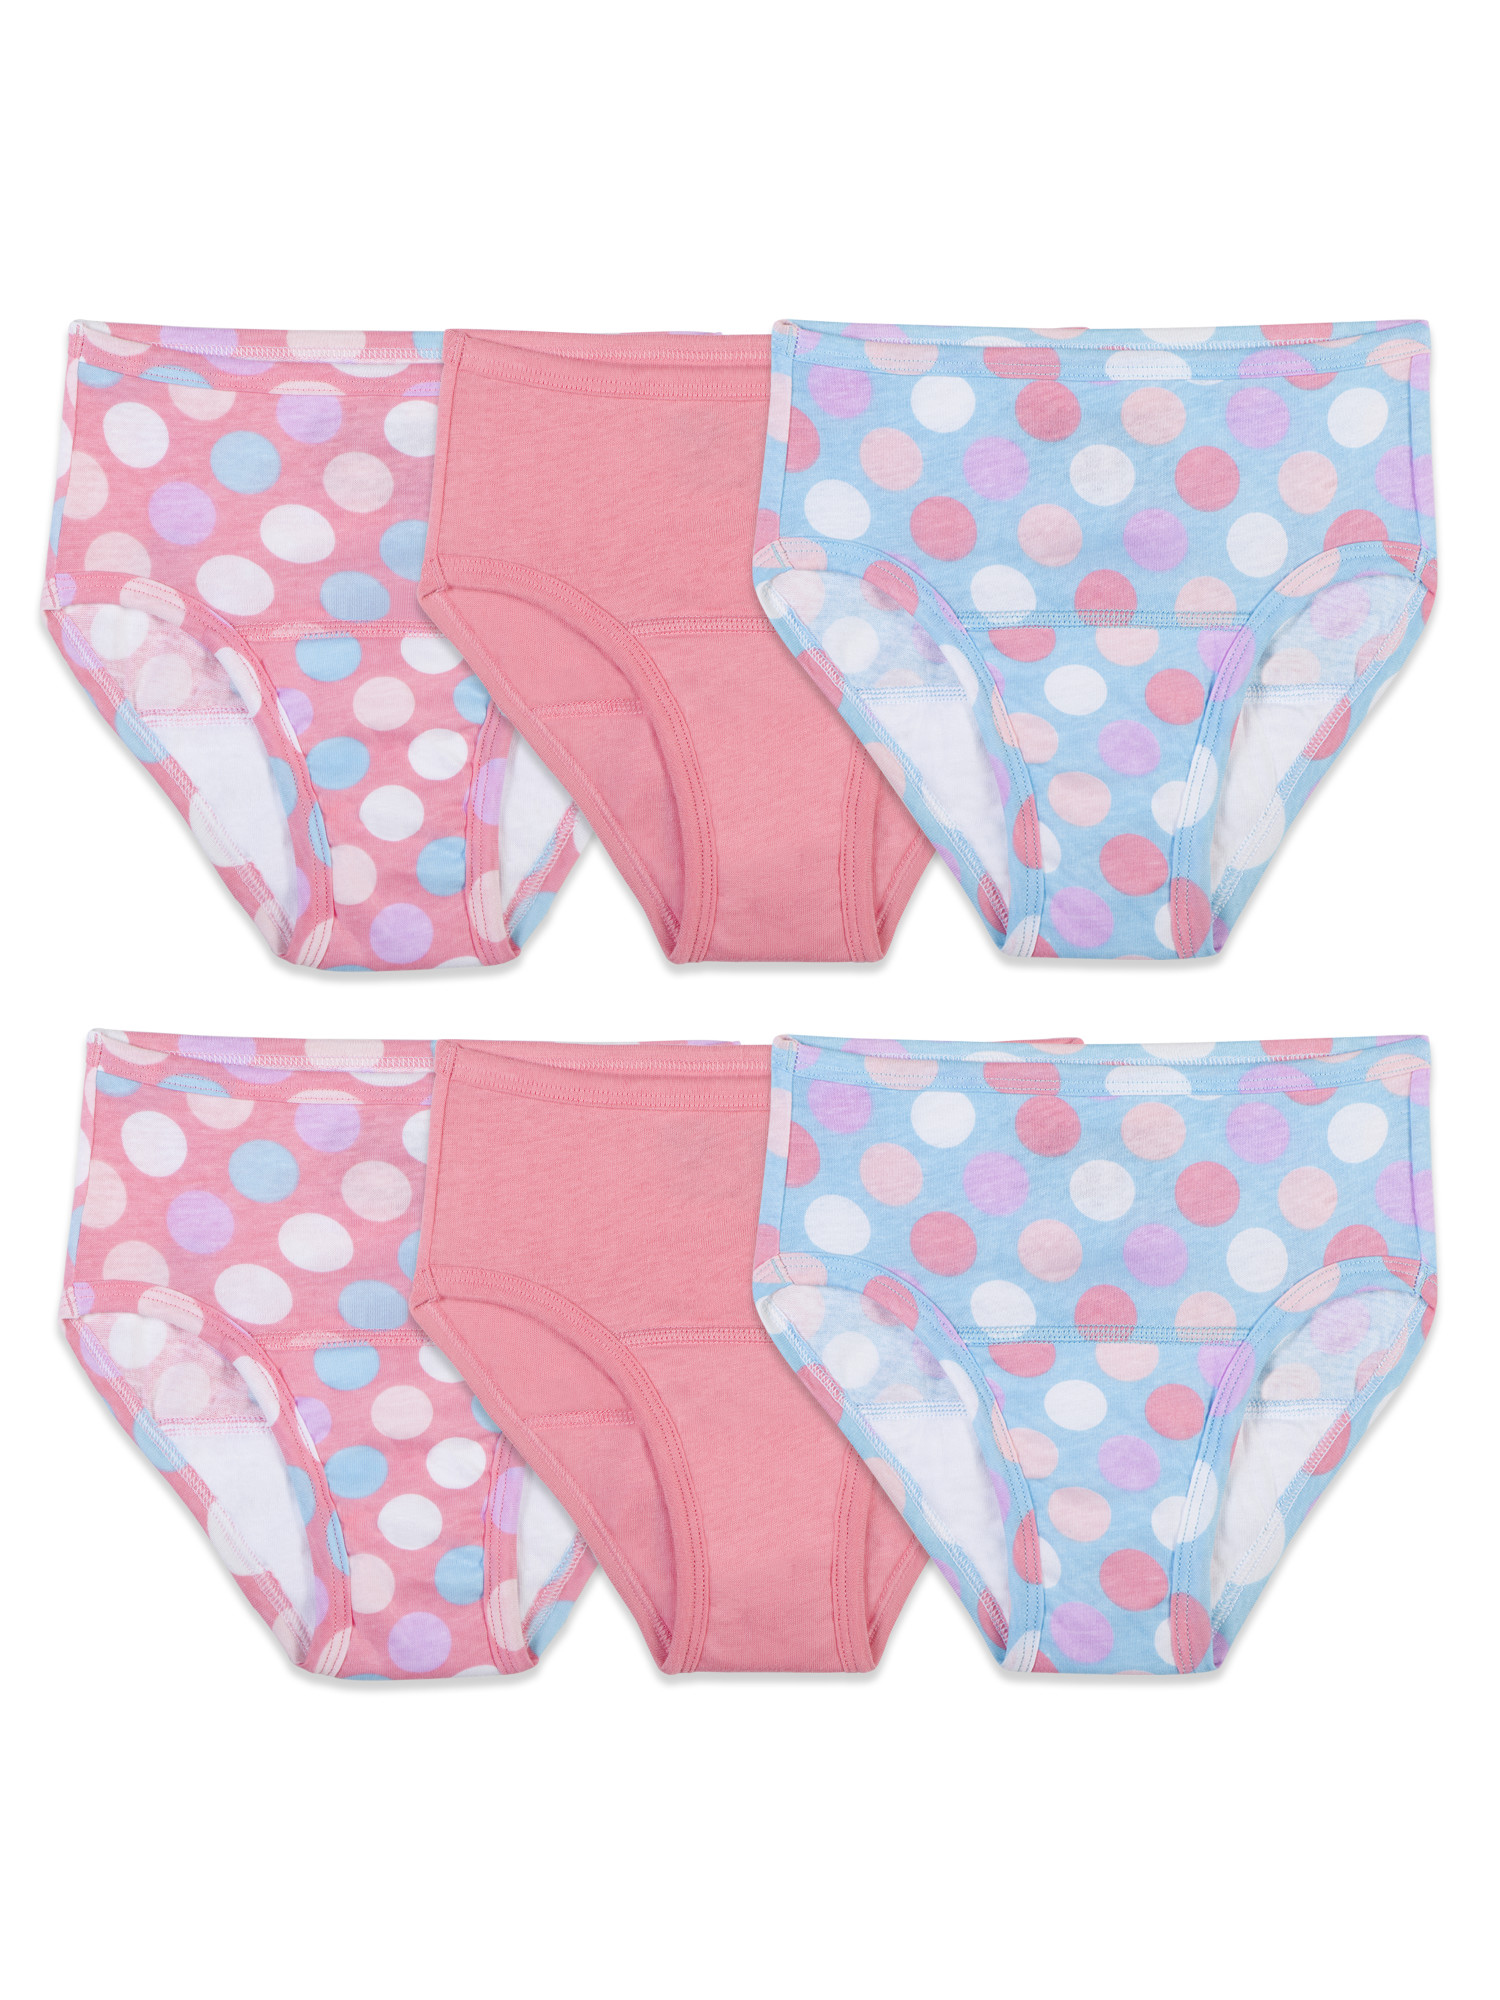 Assorted Potty Training Pants, 6 Pack (Toddler Girls)